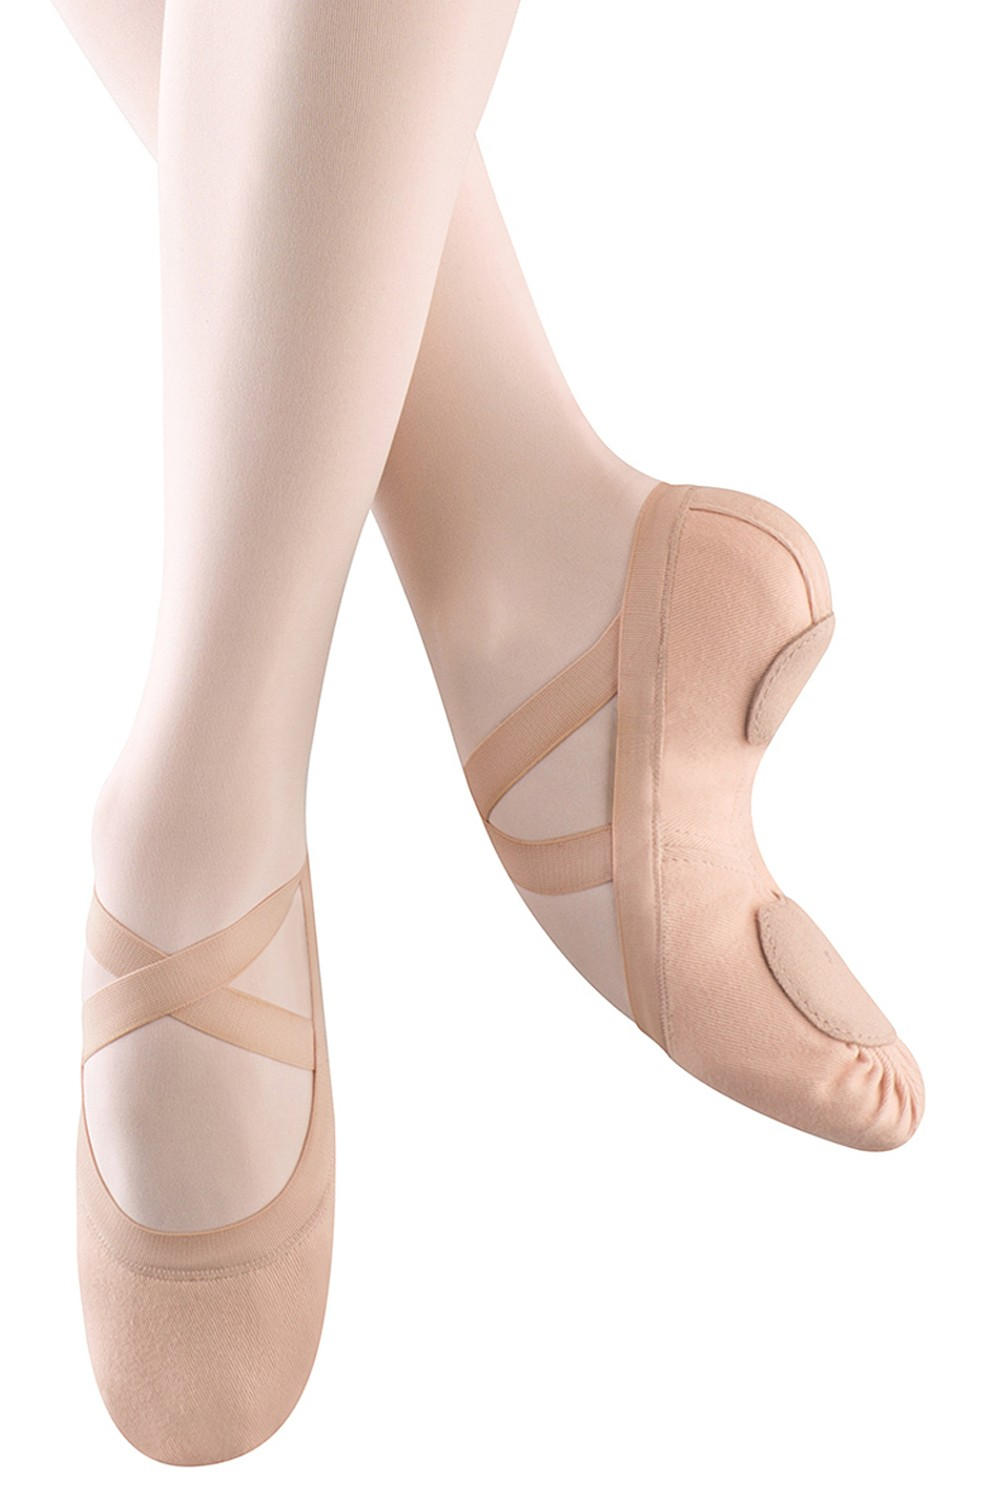 You searched for: ballerina shoes! Etsy is the home to thousands of handmade, vintage, and one-of-a-kind products and gifts related to your search. No matter what you're looking for or where you are in the world, our global marketplace of sellers can help you find unique and affordable options. Let's get started!